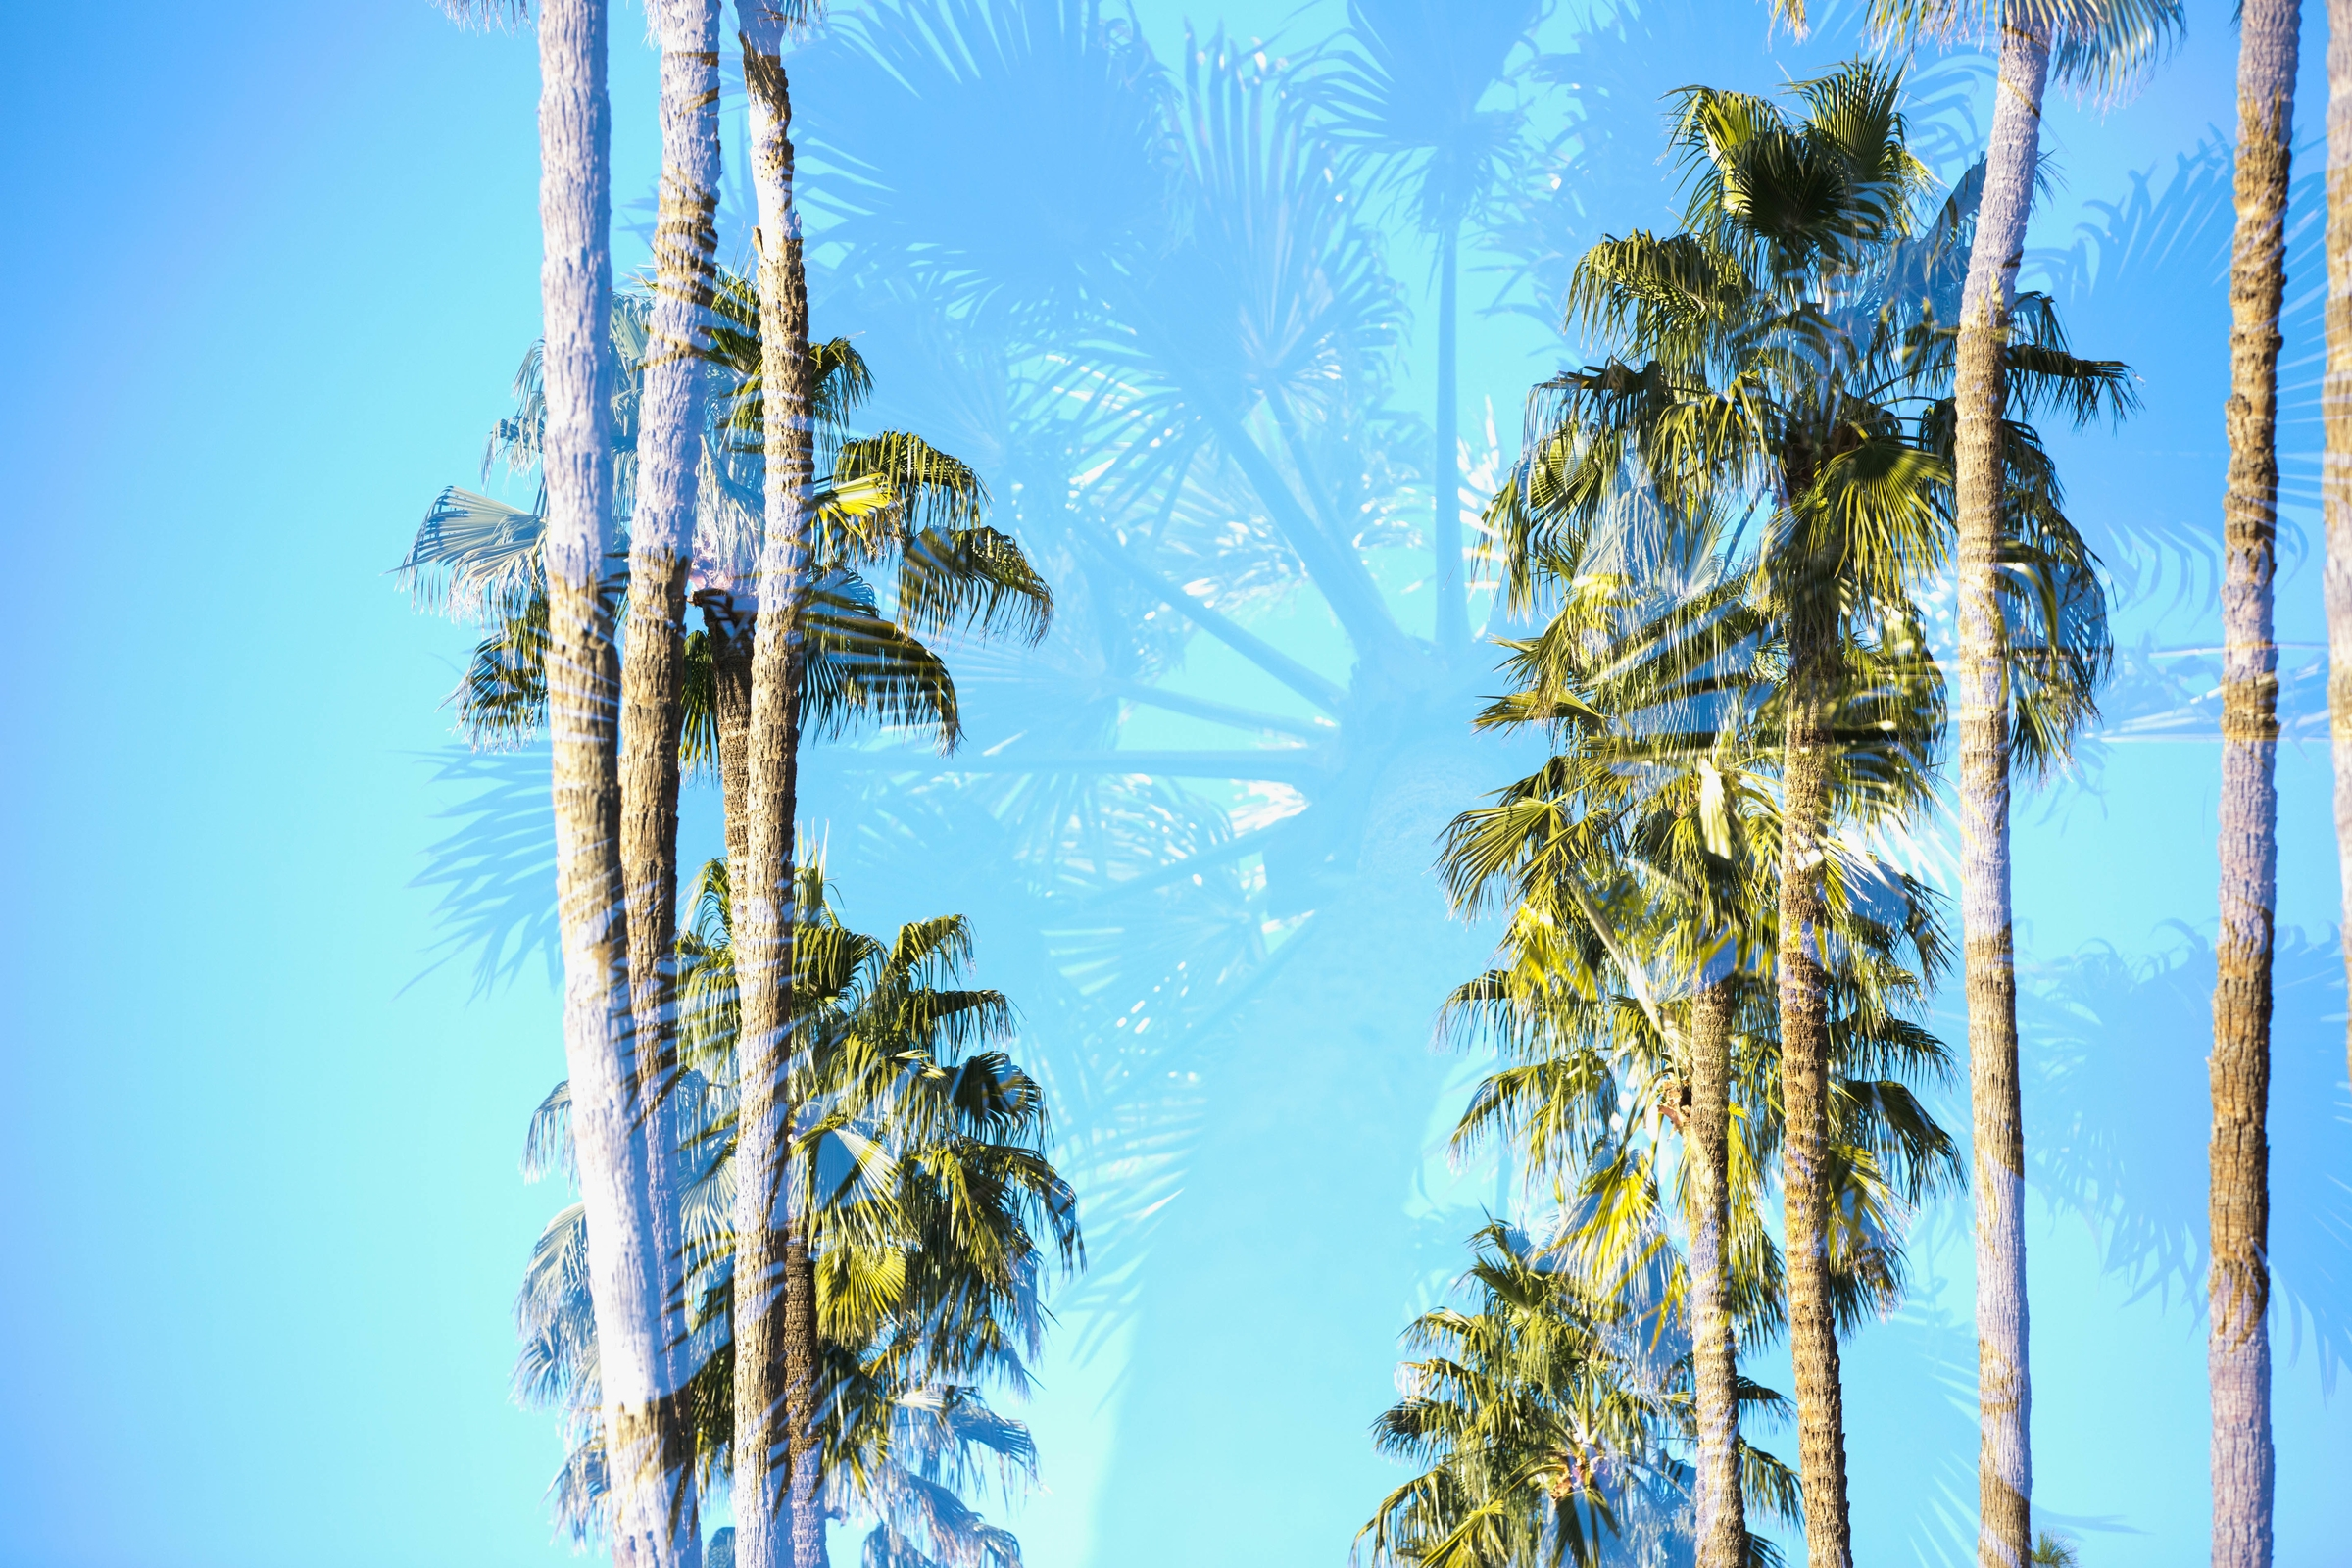 Two rows of palm trees against a bright blue sky.